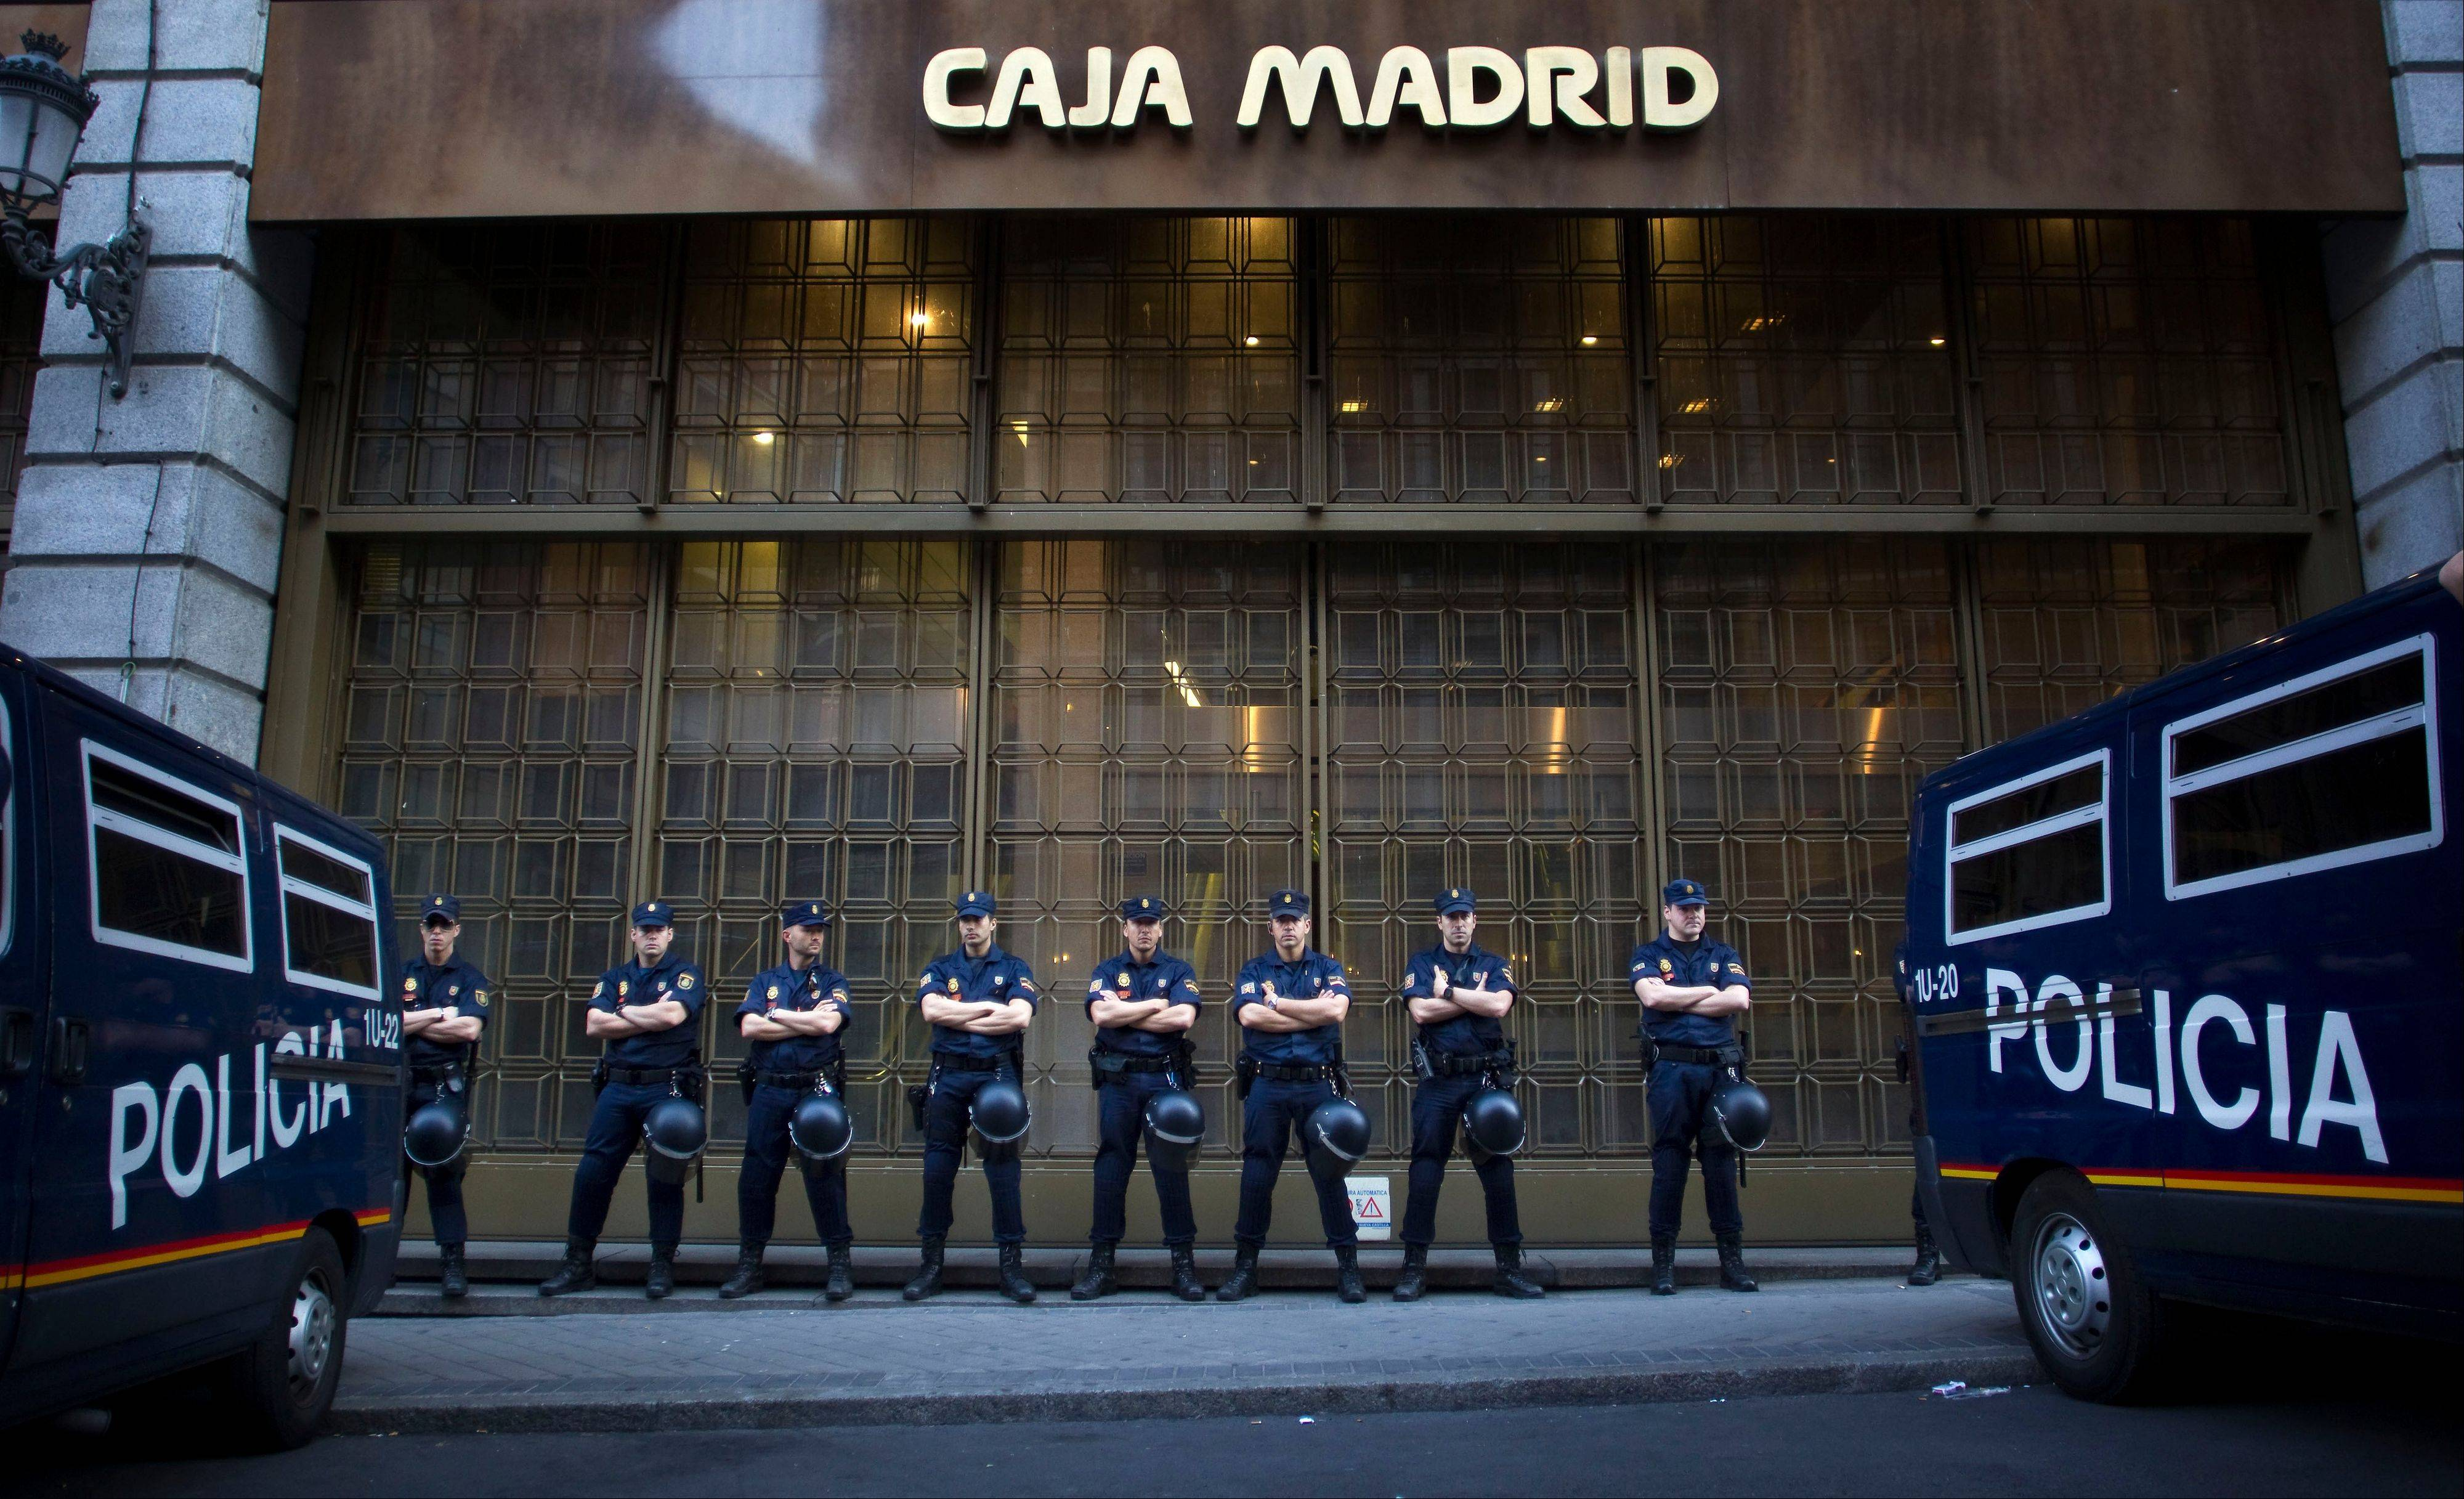 Riot police stand guard in front of a branch of the recently nationalized Caja de Madrid/Bankia bank during a protest in Madrid. Spain asked for a European rescue of its troubled banks Saturday.